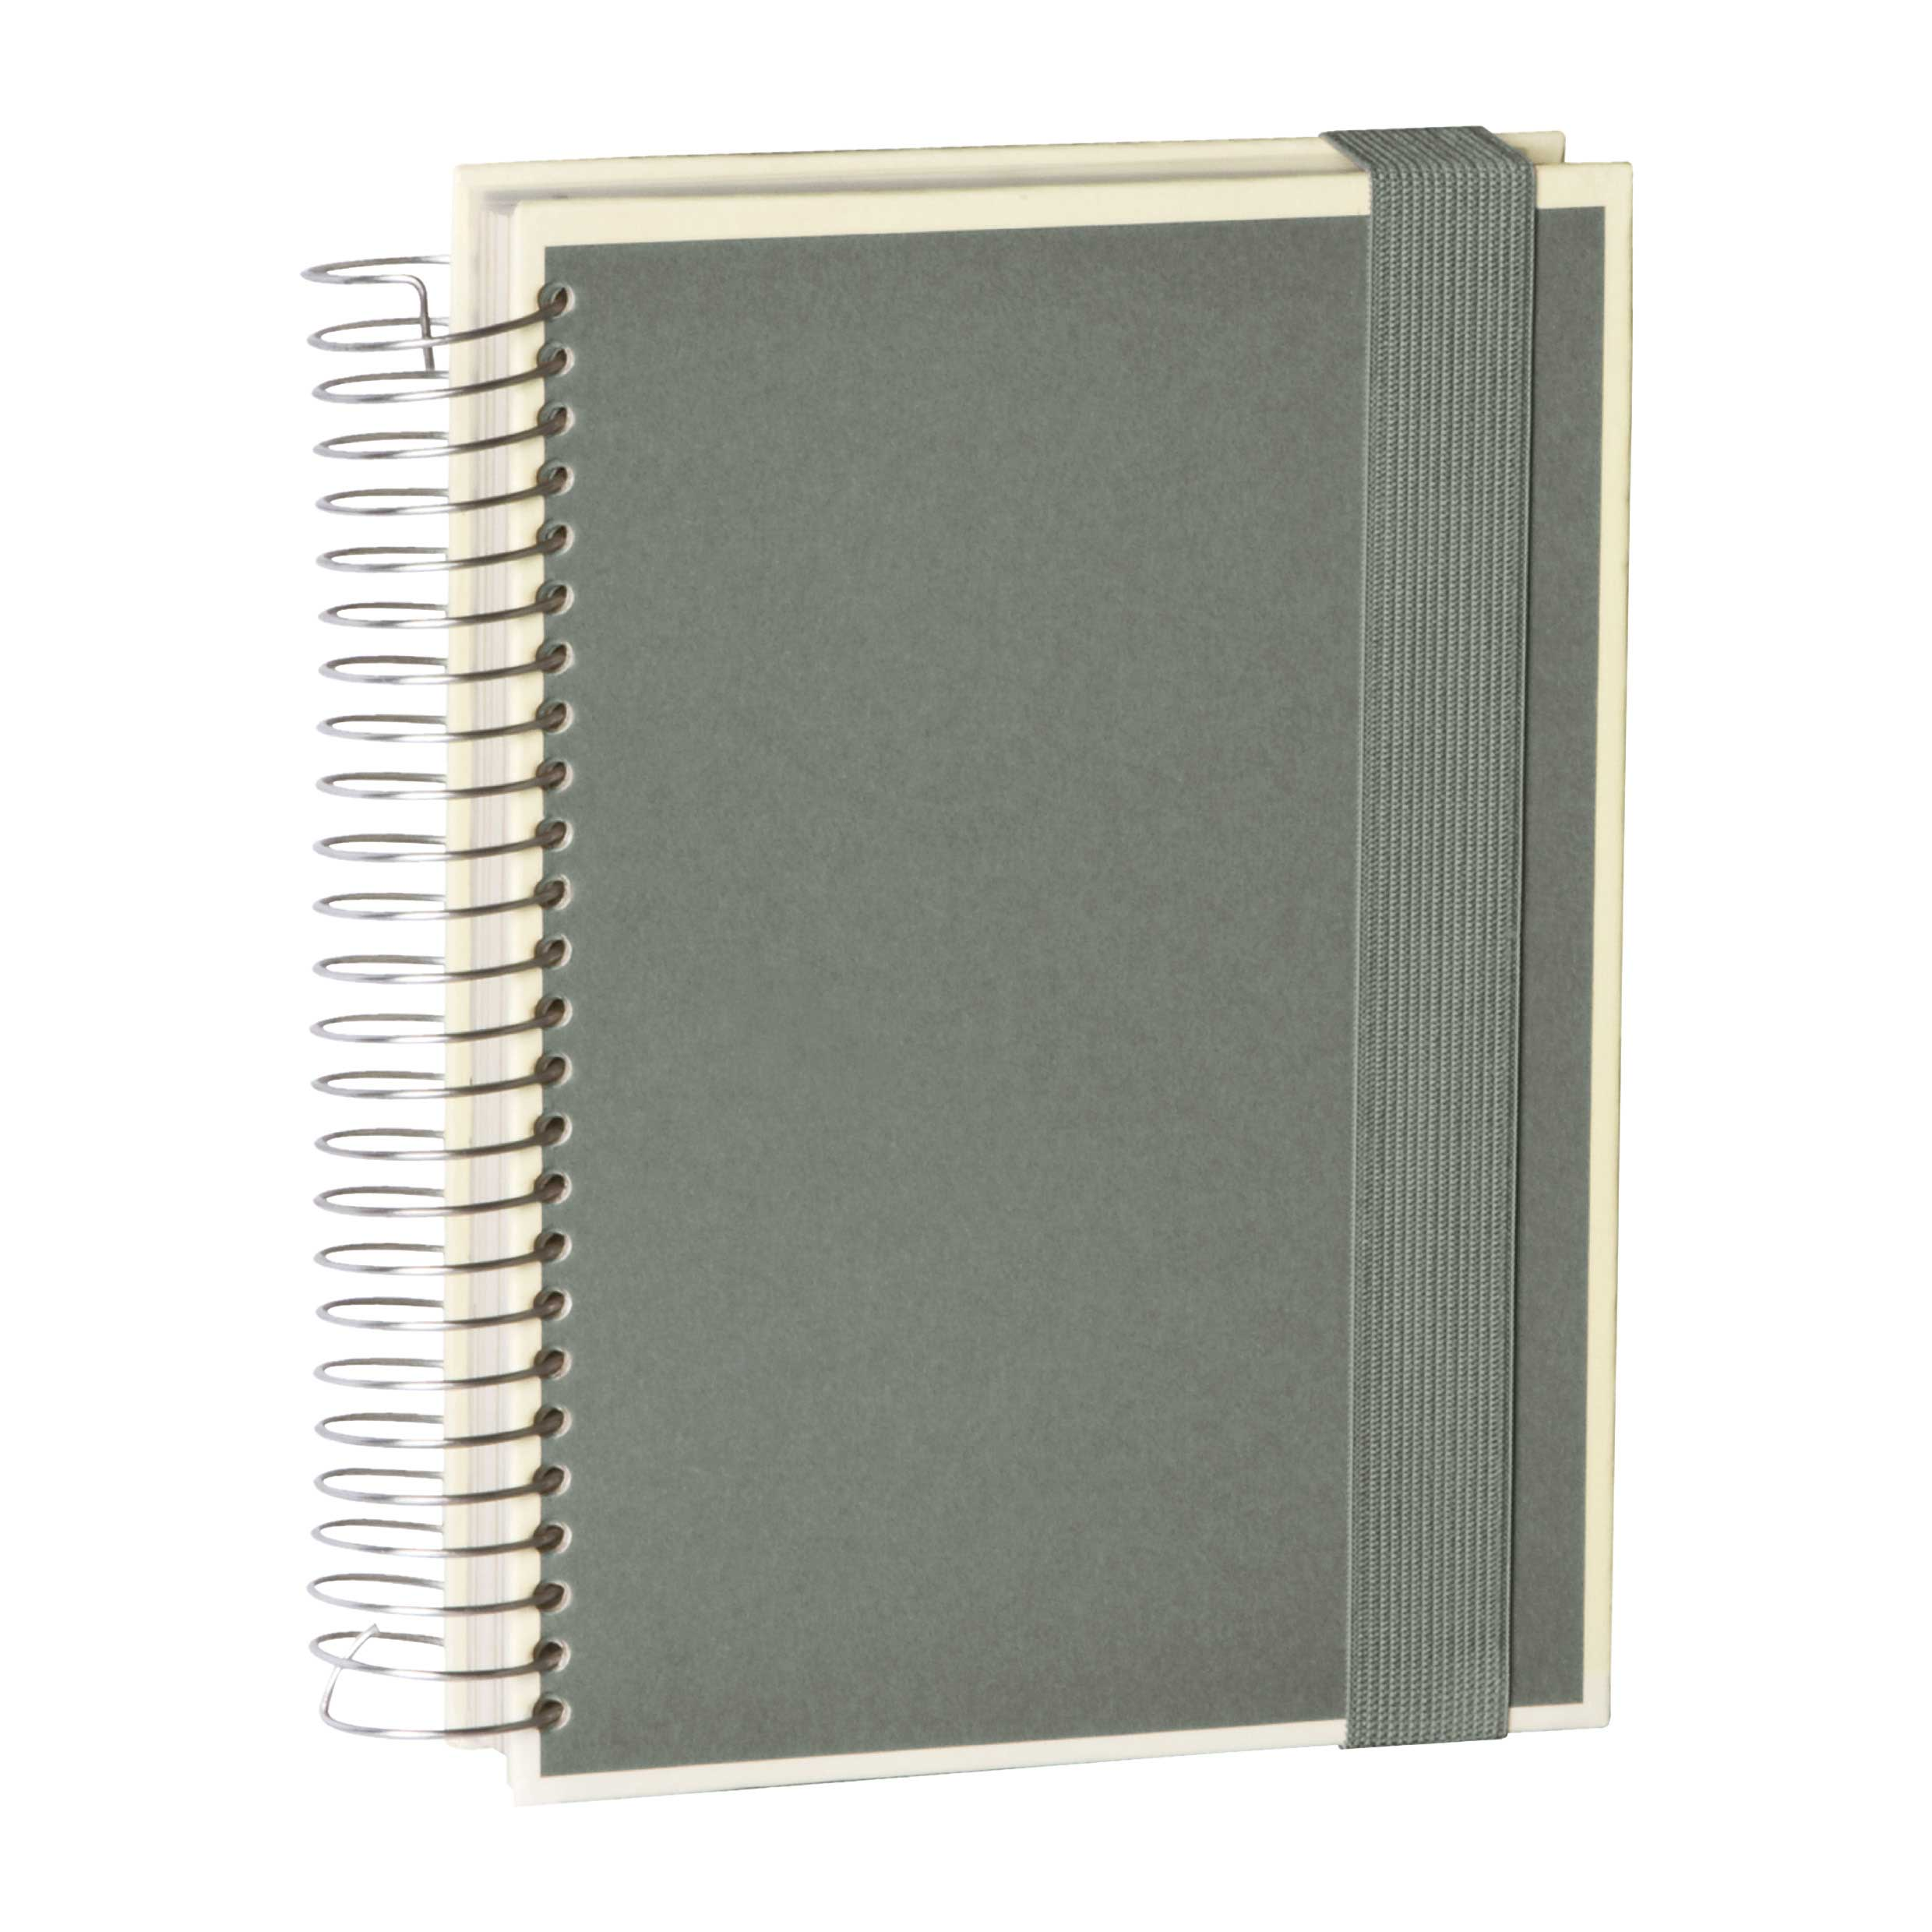 Semikolon Mucho A5 Spiral Notebook Gray